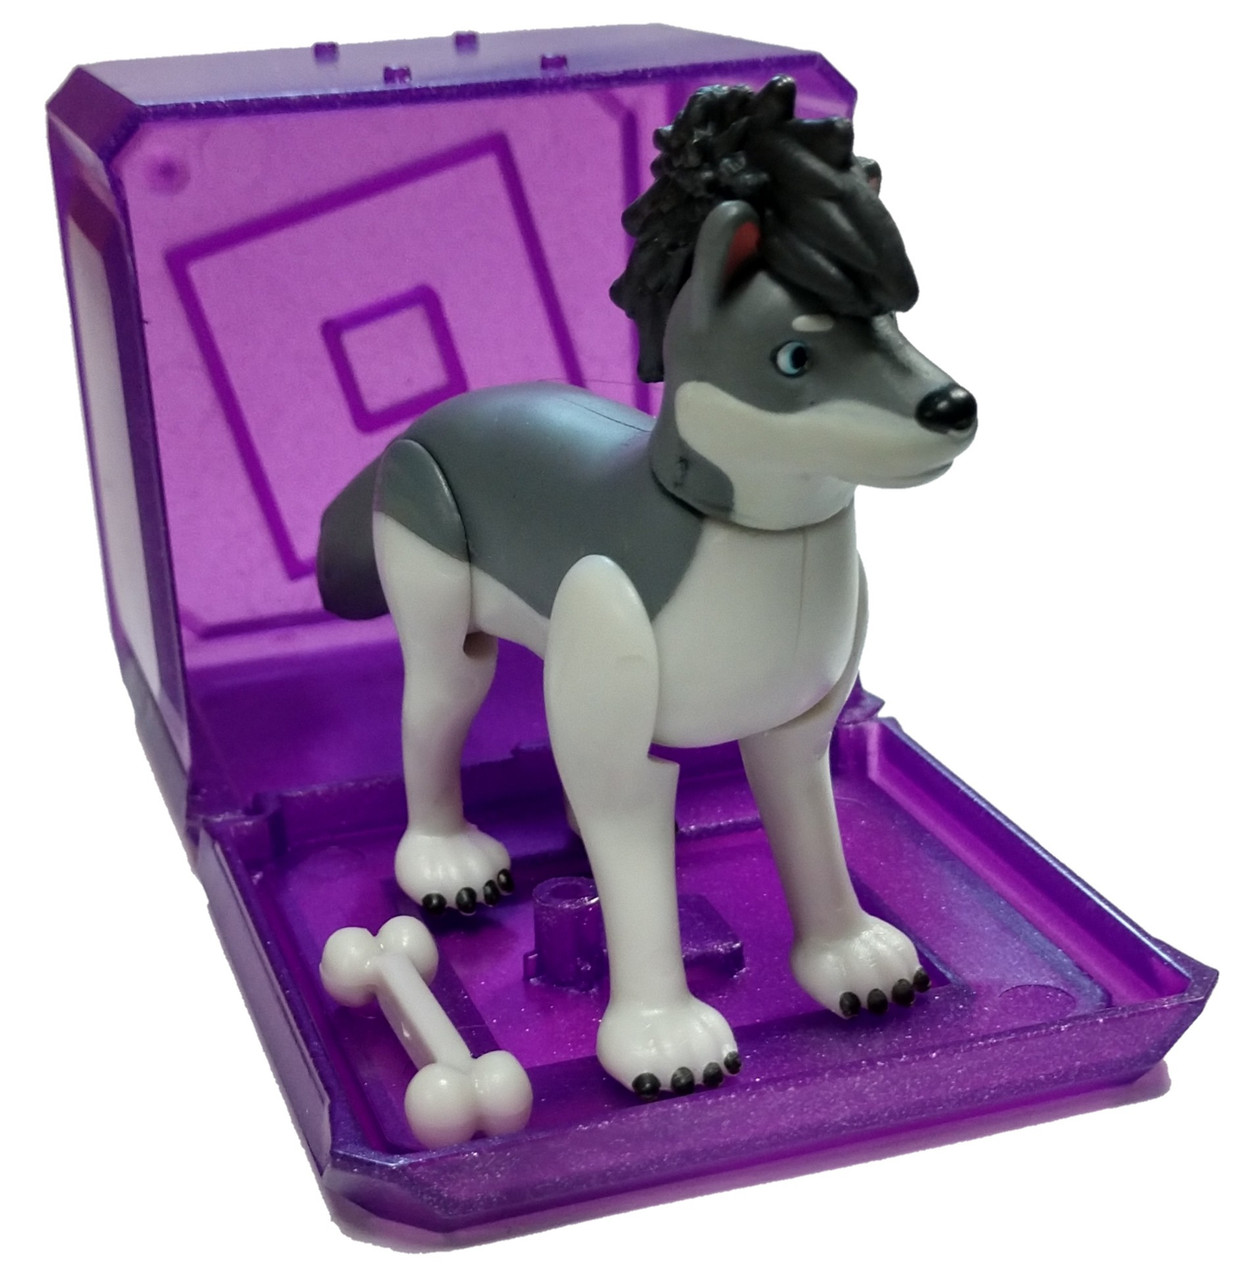 Details About Roblox Celebrity Collection Series 3 Mystery Pack Purple Cube - Roblox Celebrity Collection Series 3 Wolves Life 3 Pup Mini